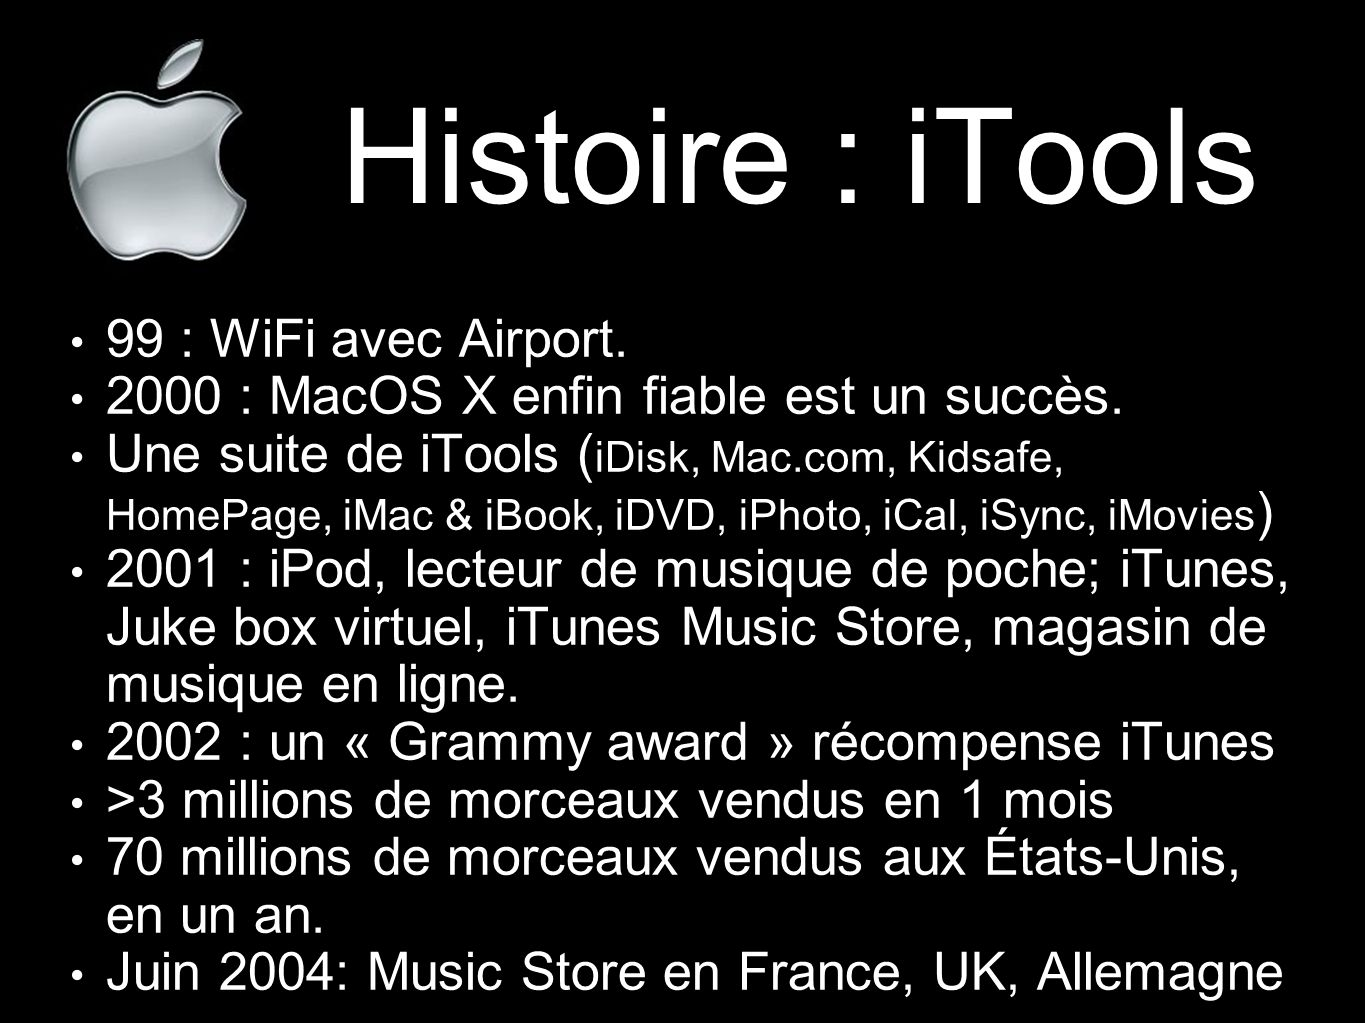 Histoire : iTools 99 : WiFi avec Airport.